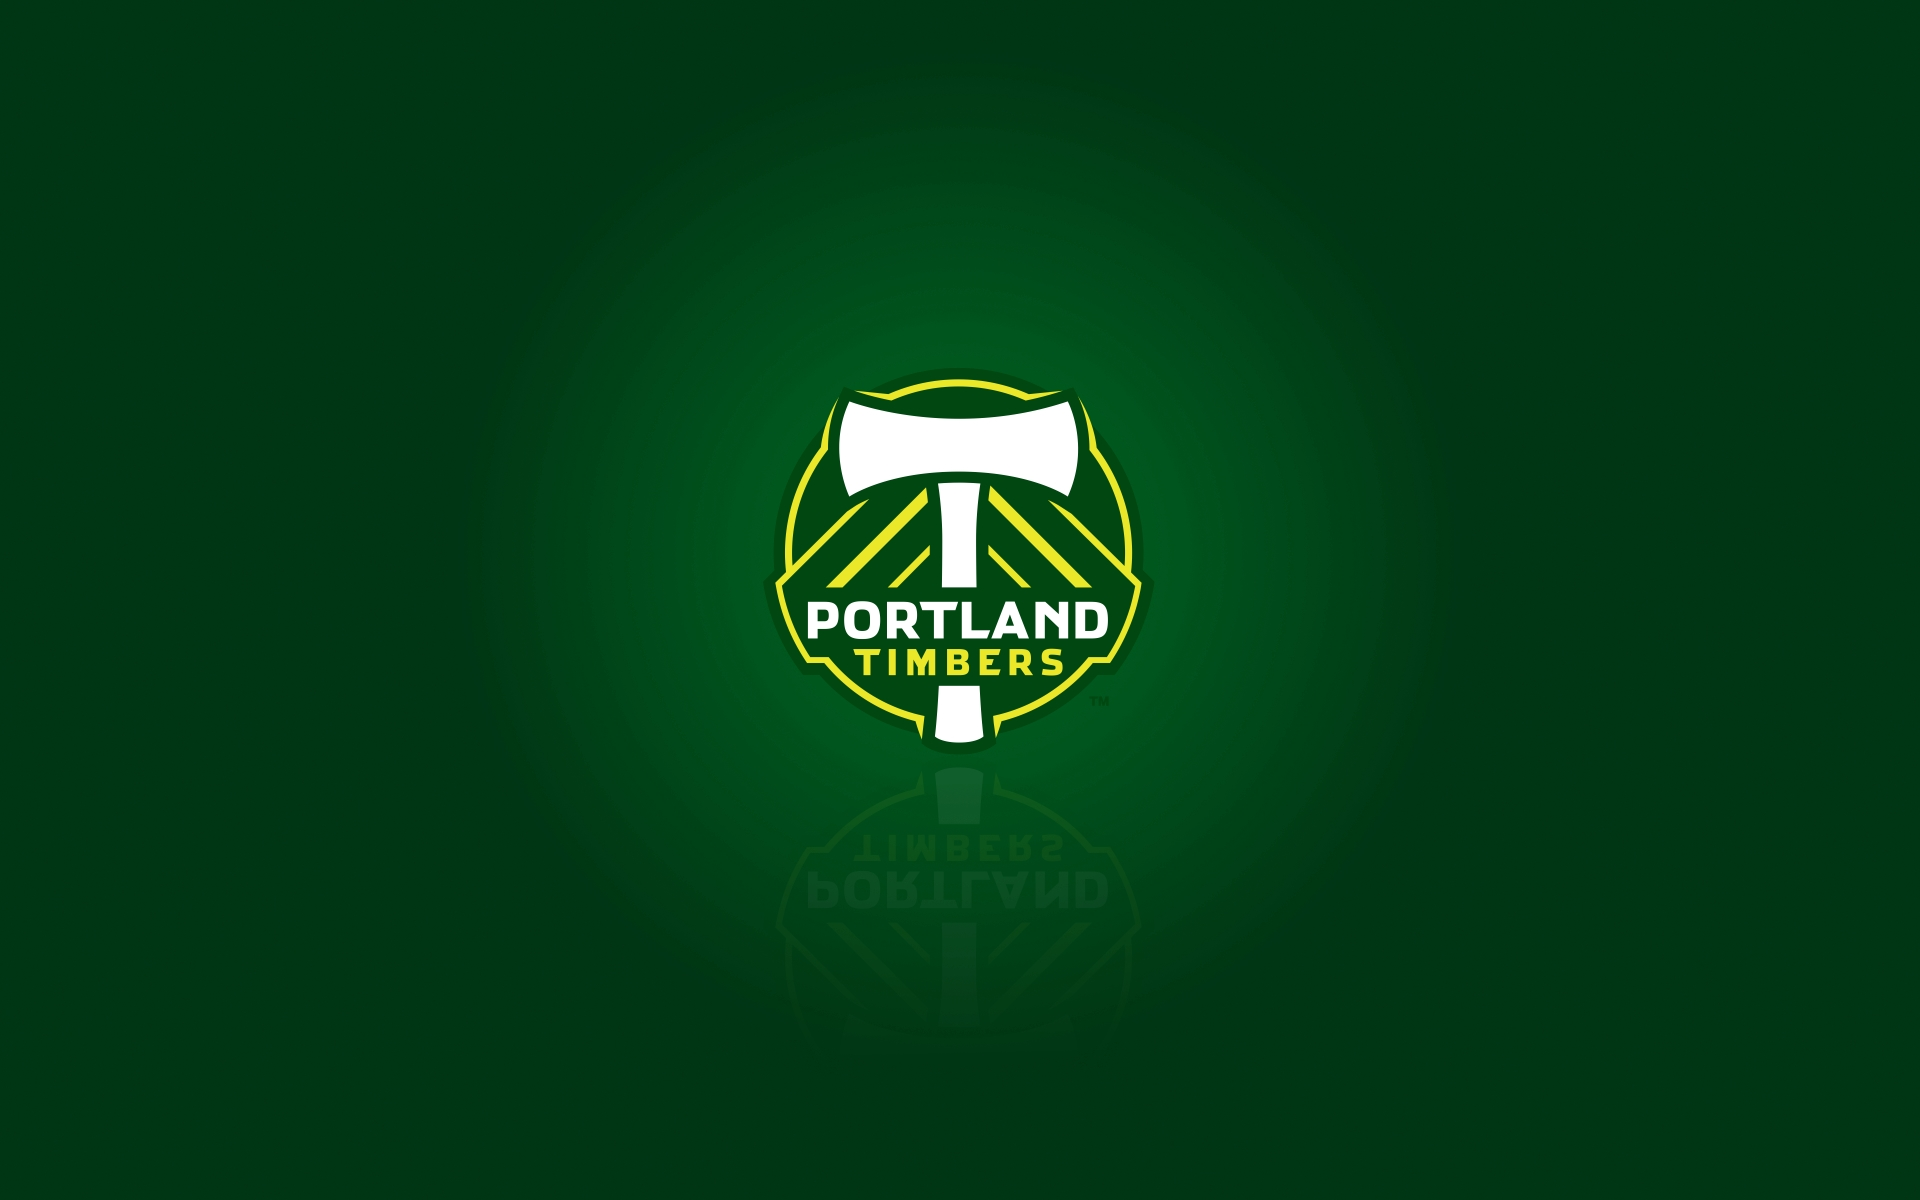 1920x1200 - Portland Timbers Wallpapers 27